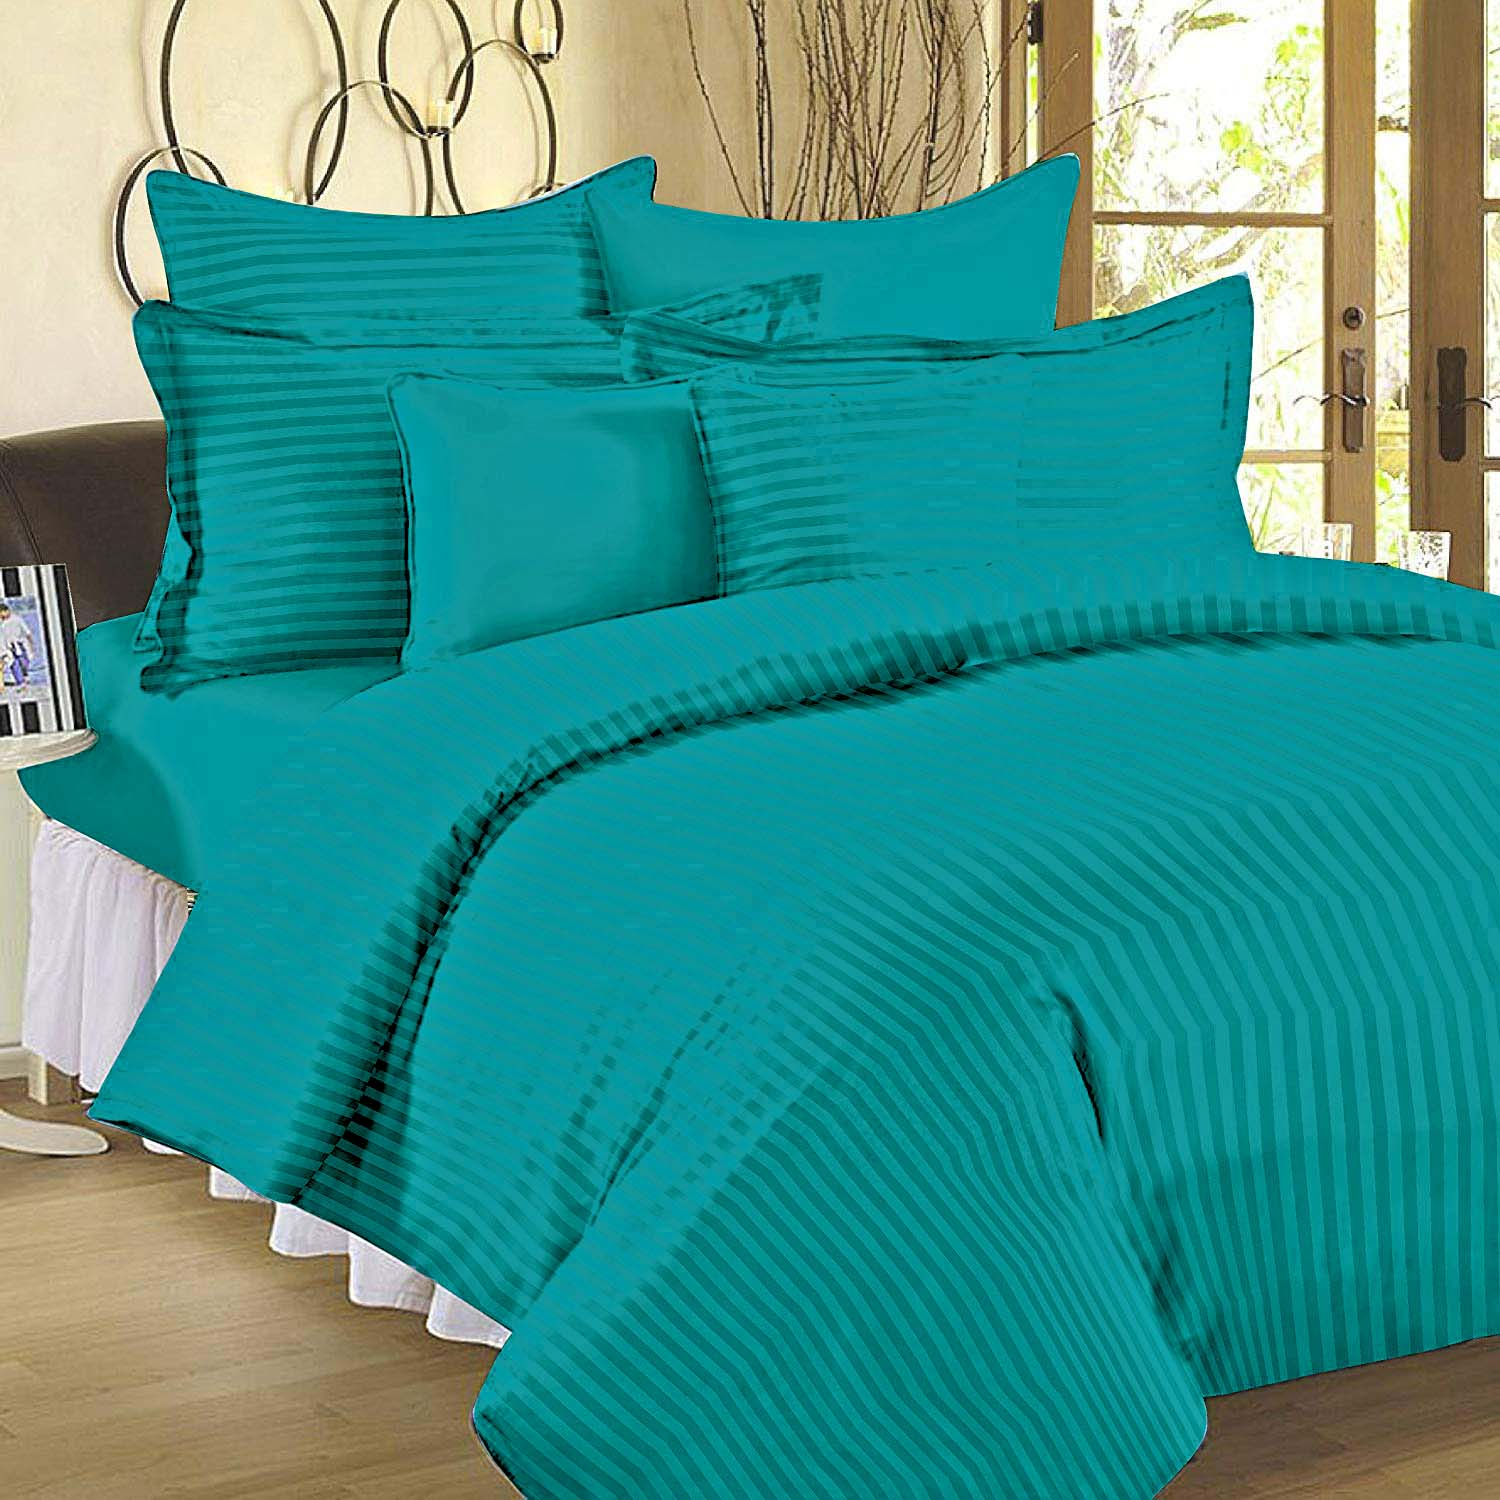 Aqua Turquoise Self Design 300 TC King Size Pure Cotton Satin Slumber Sheet for Double Bed with 2 pillow covers